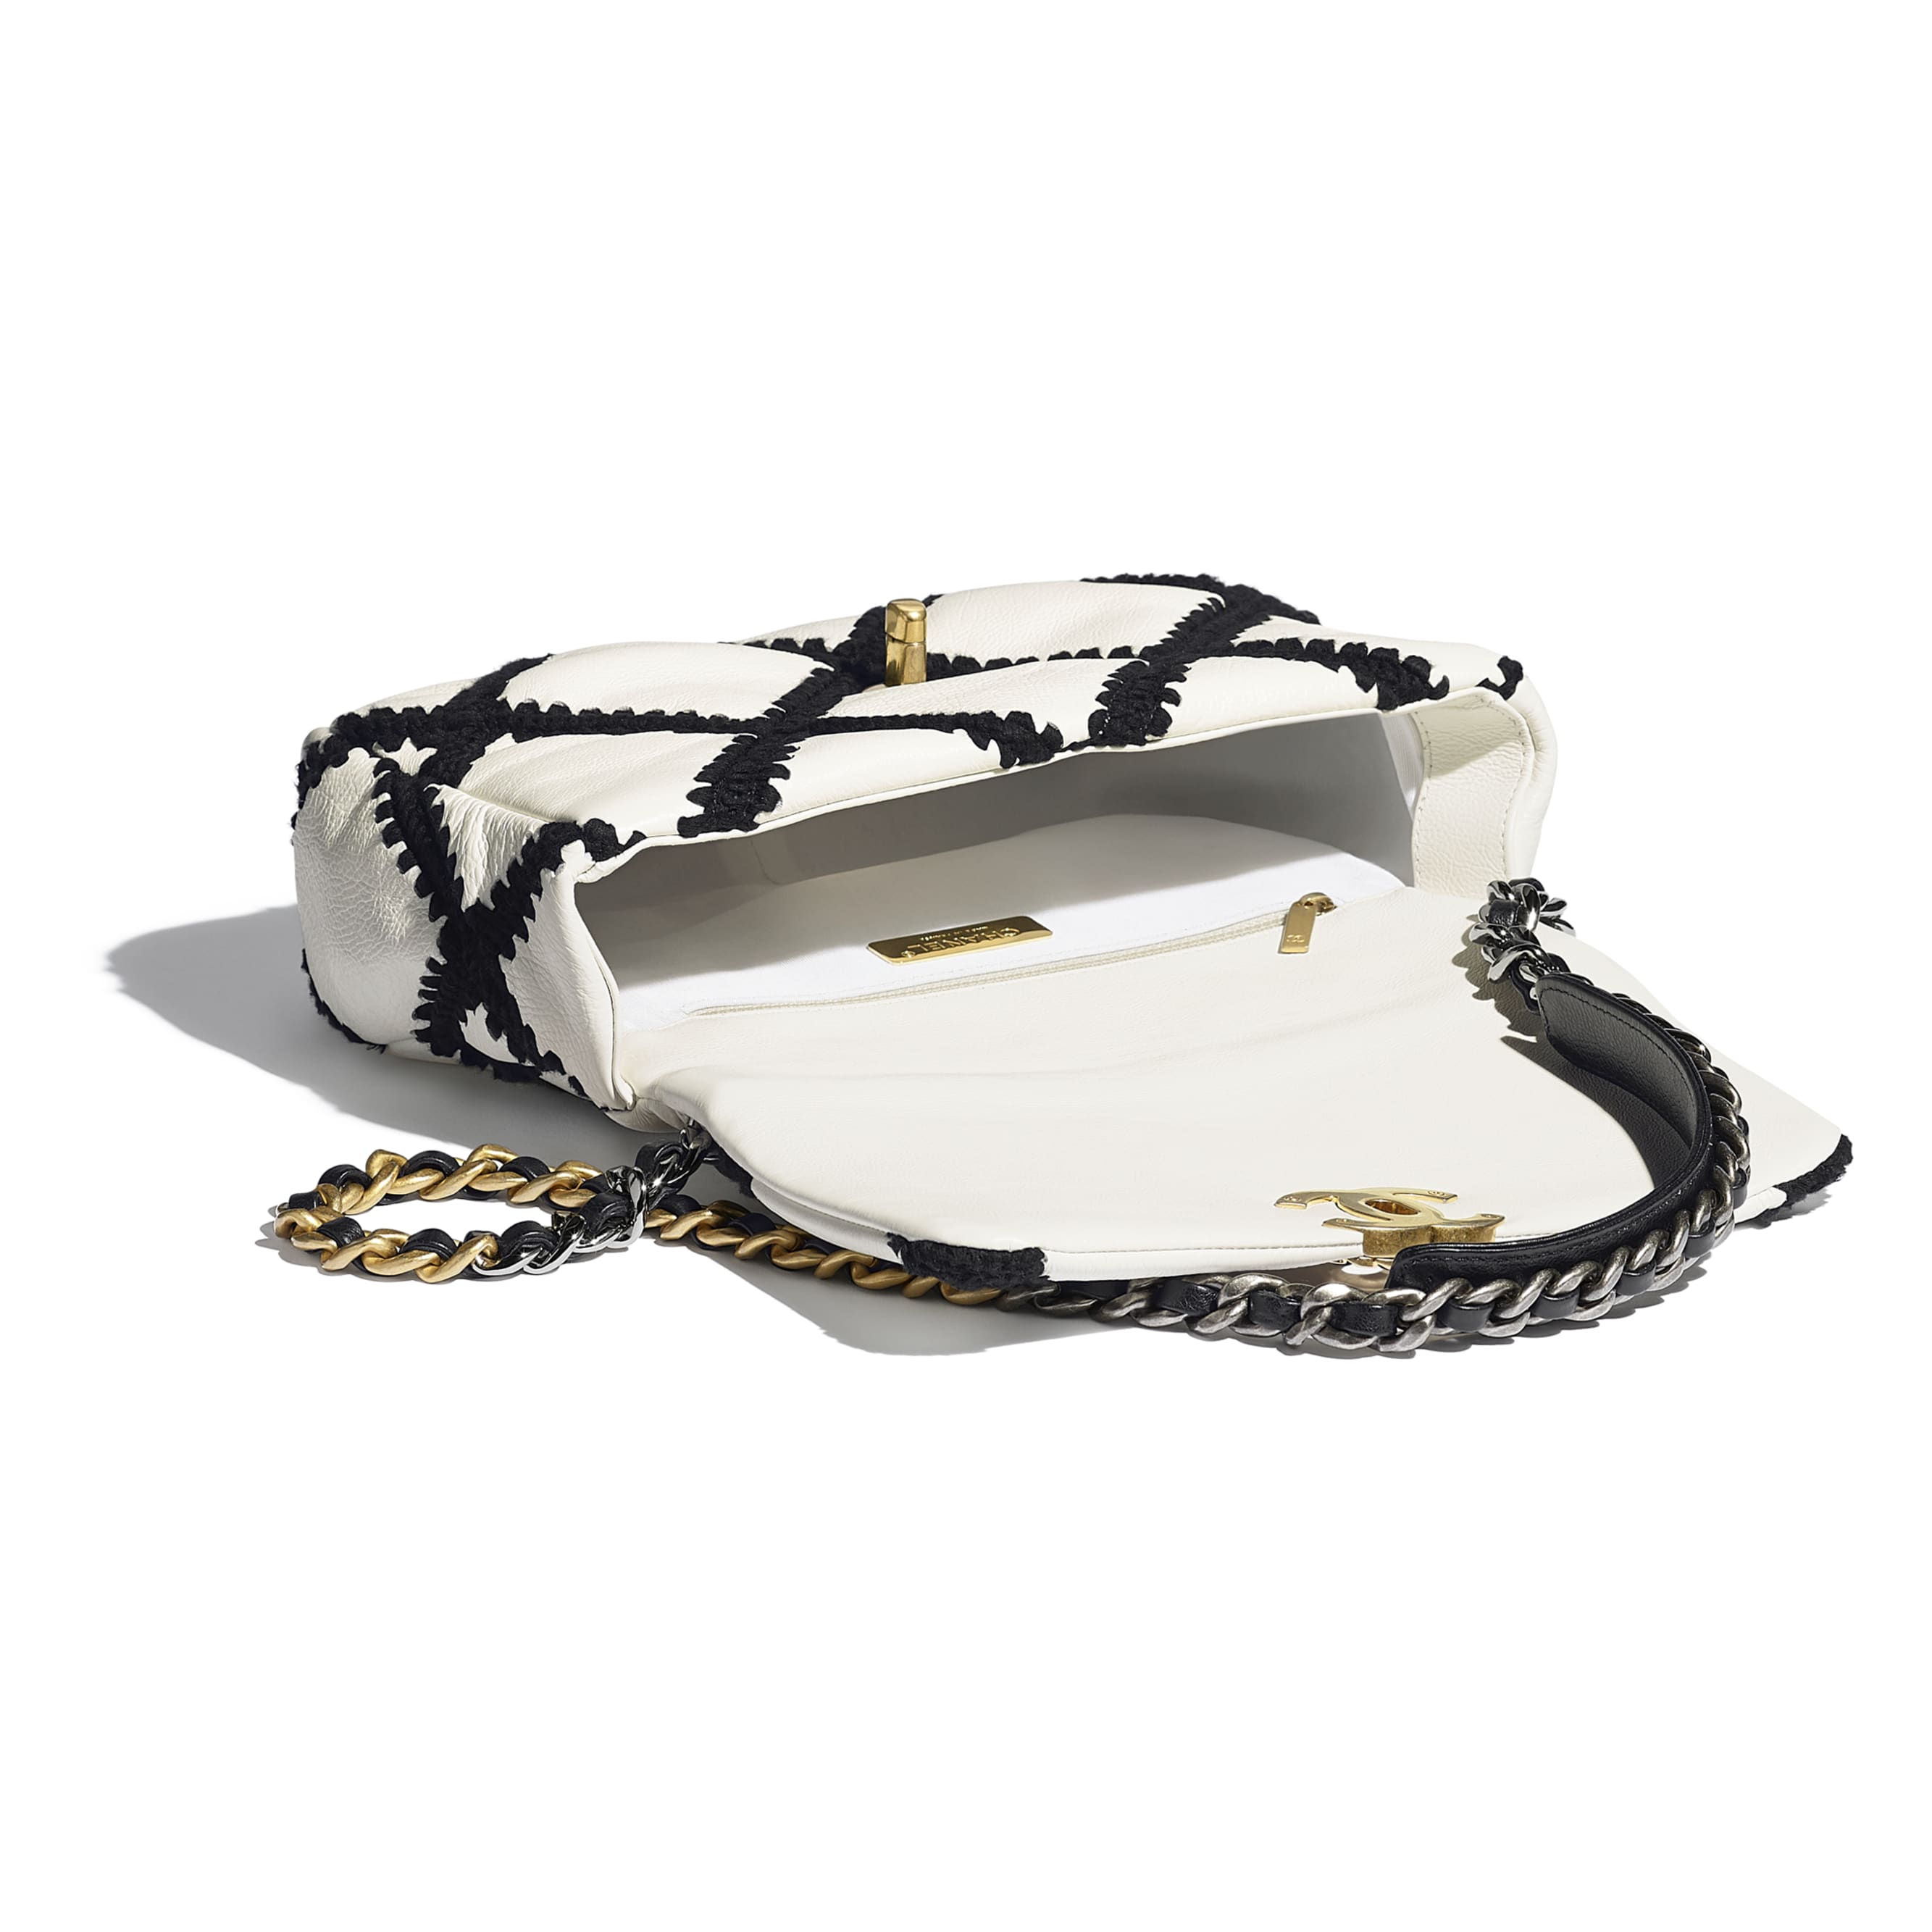 CHANEL 19 Flap Bag - White & Black - Calfskin, Crochet, Gold-Tone, Silver-Tone & Ruthenium-Finish Metal - CHANEL - Other view - see standard sized version